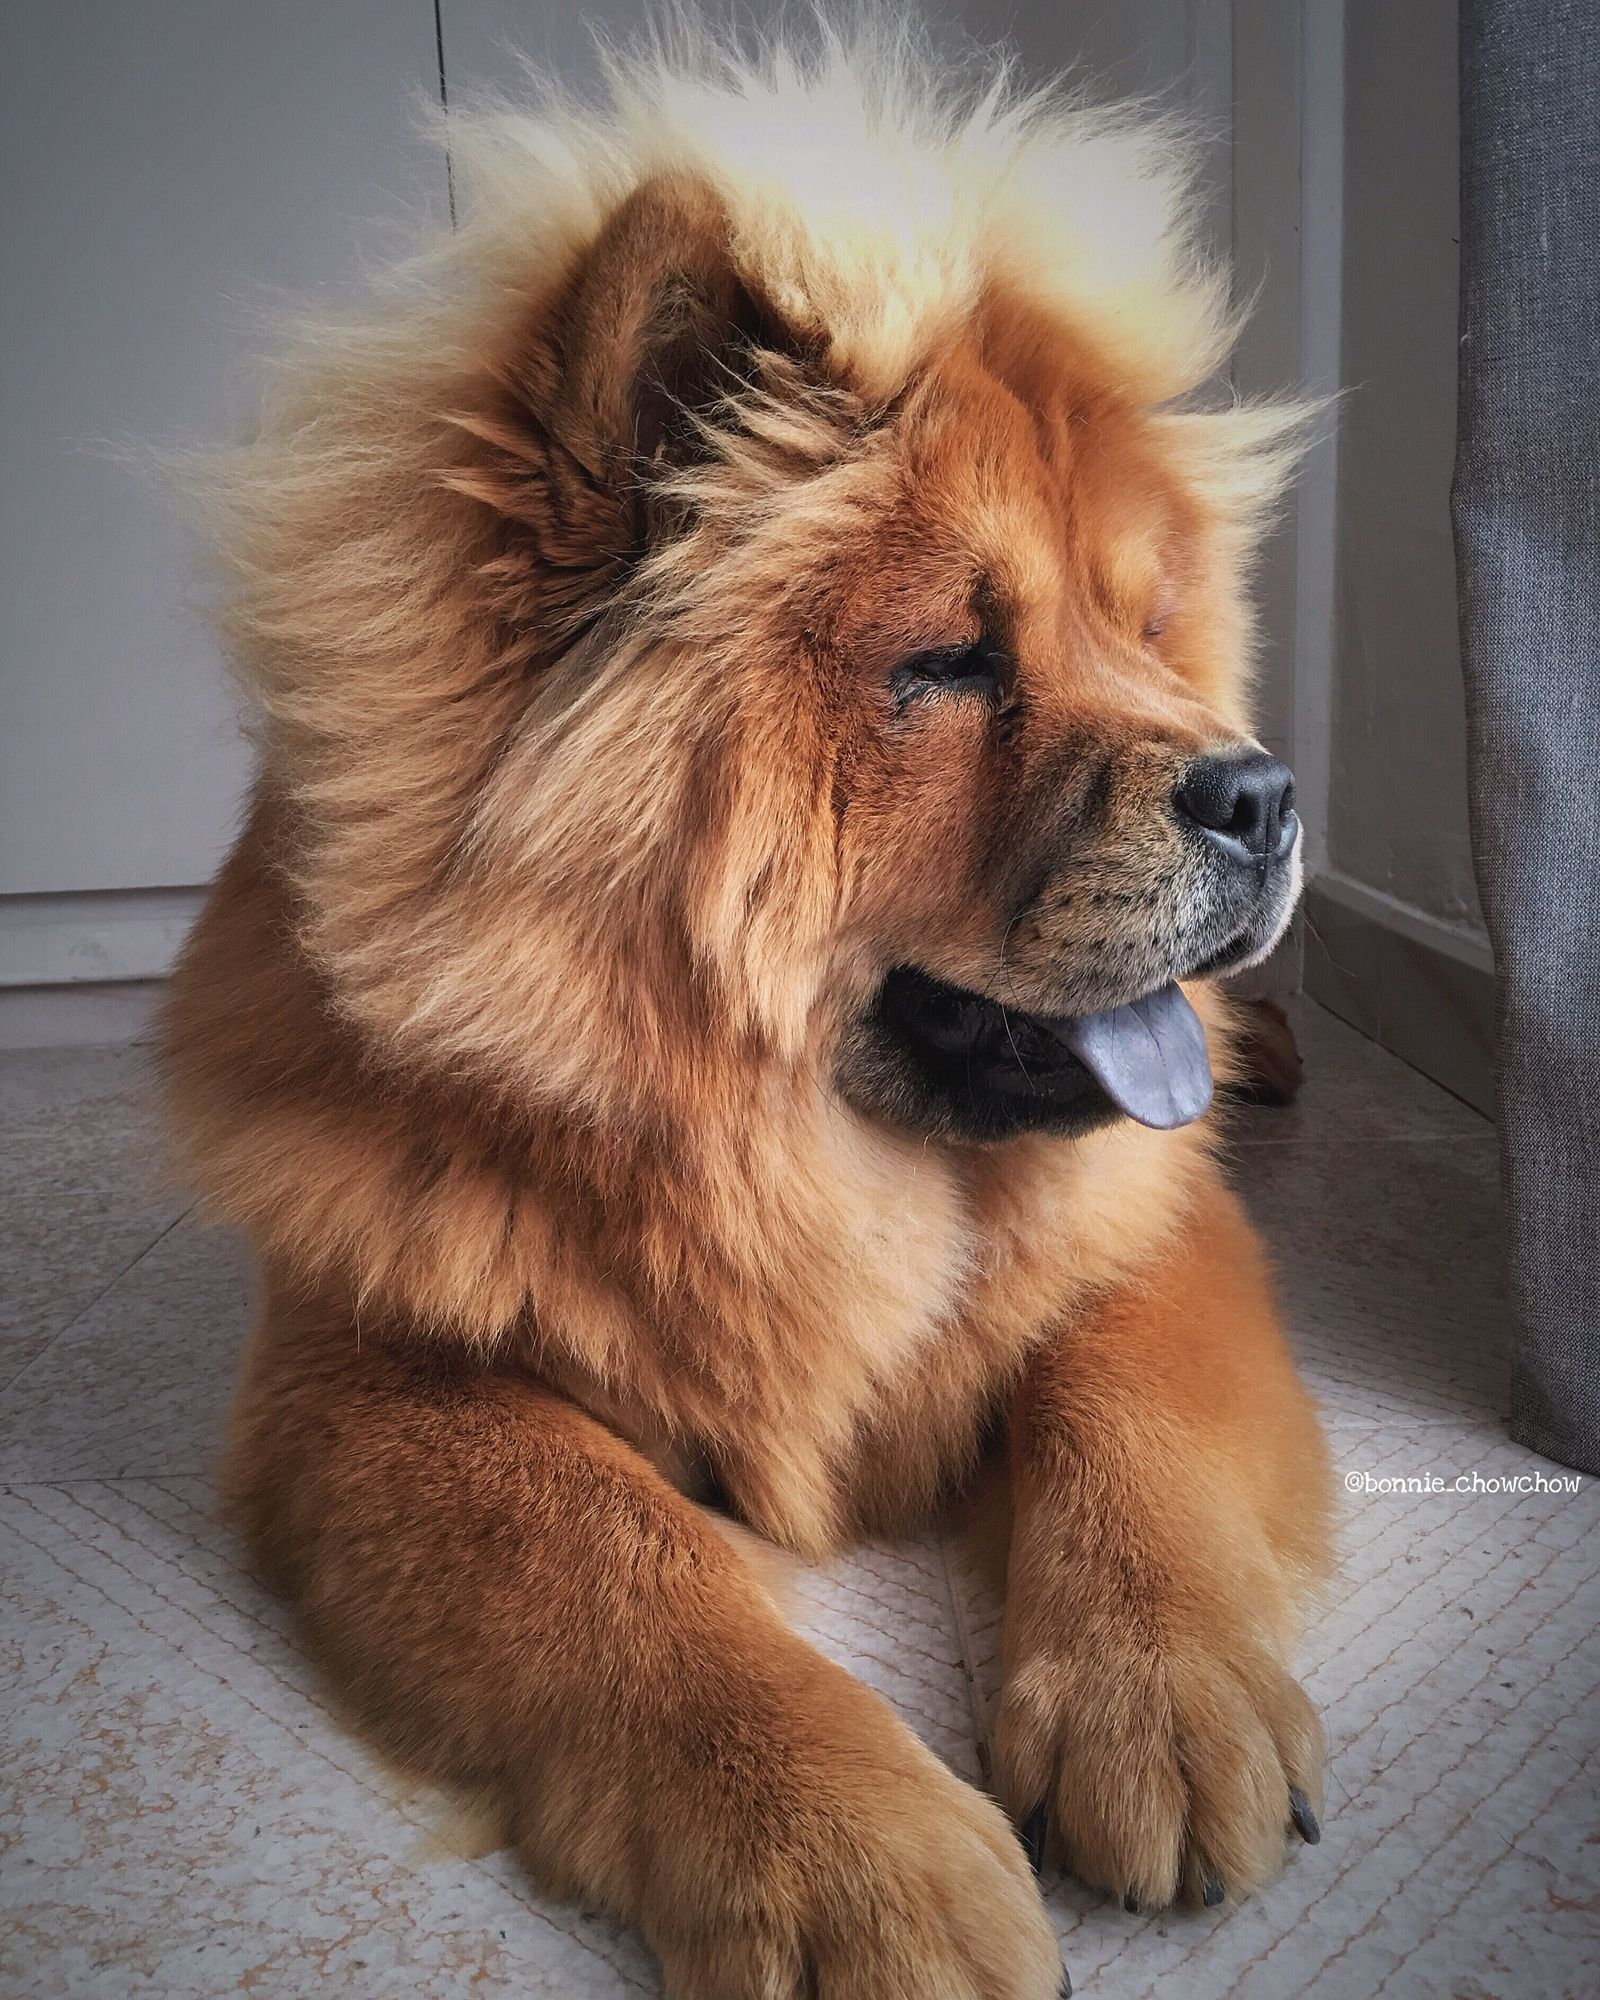 Pupy Training Treats My Cutie Bonnie Chow Chow Dog How To - This instagram chow chow looks like a fluffy potato and its so cute it doesnt even look real